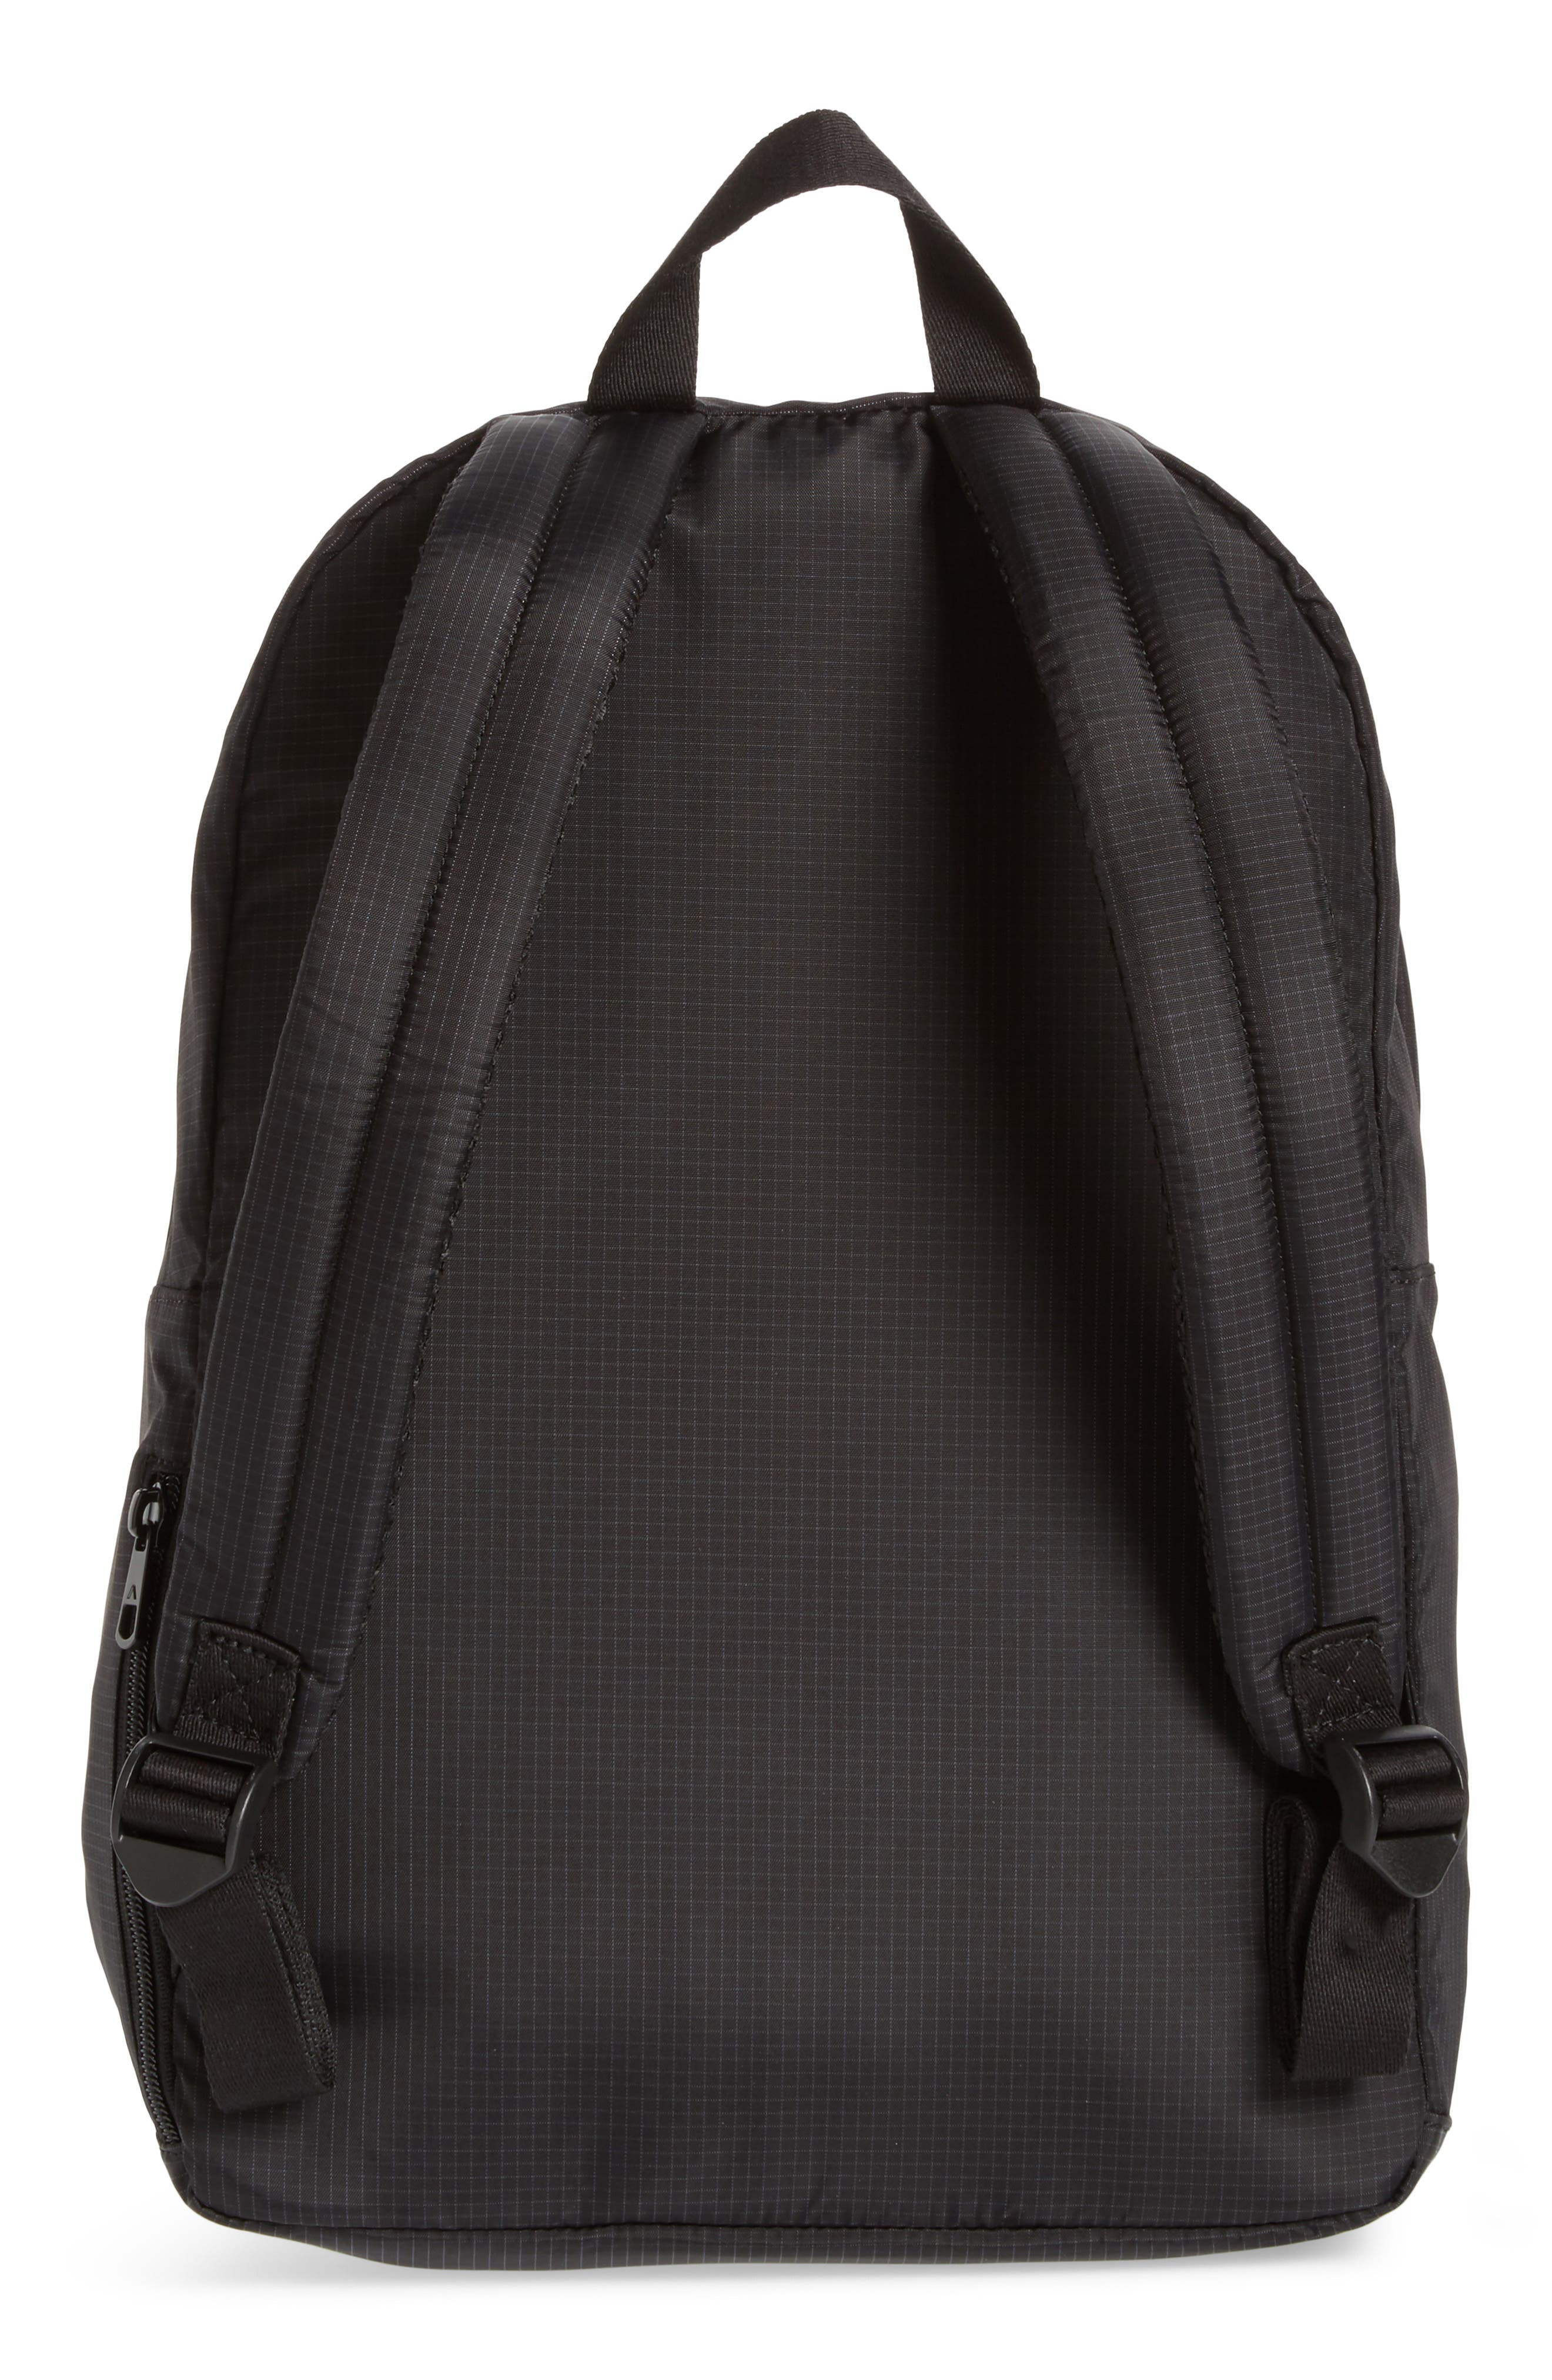 STATE Wyckoff Marshall Laptop Ripstop Backpack,                             Alternate thumbnail 3, color,                             Black